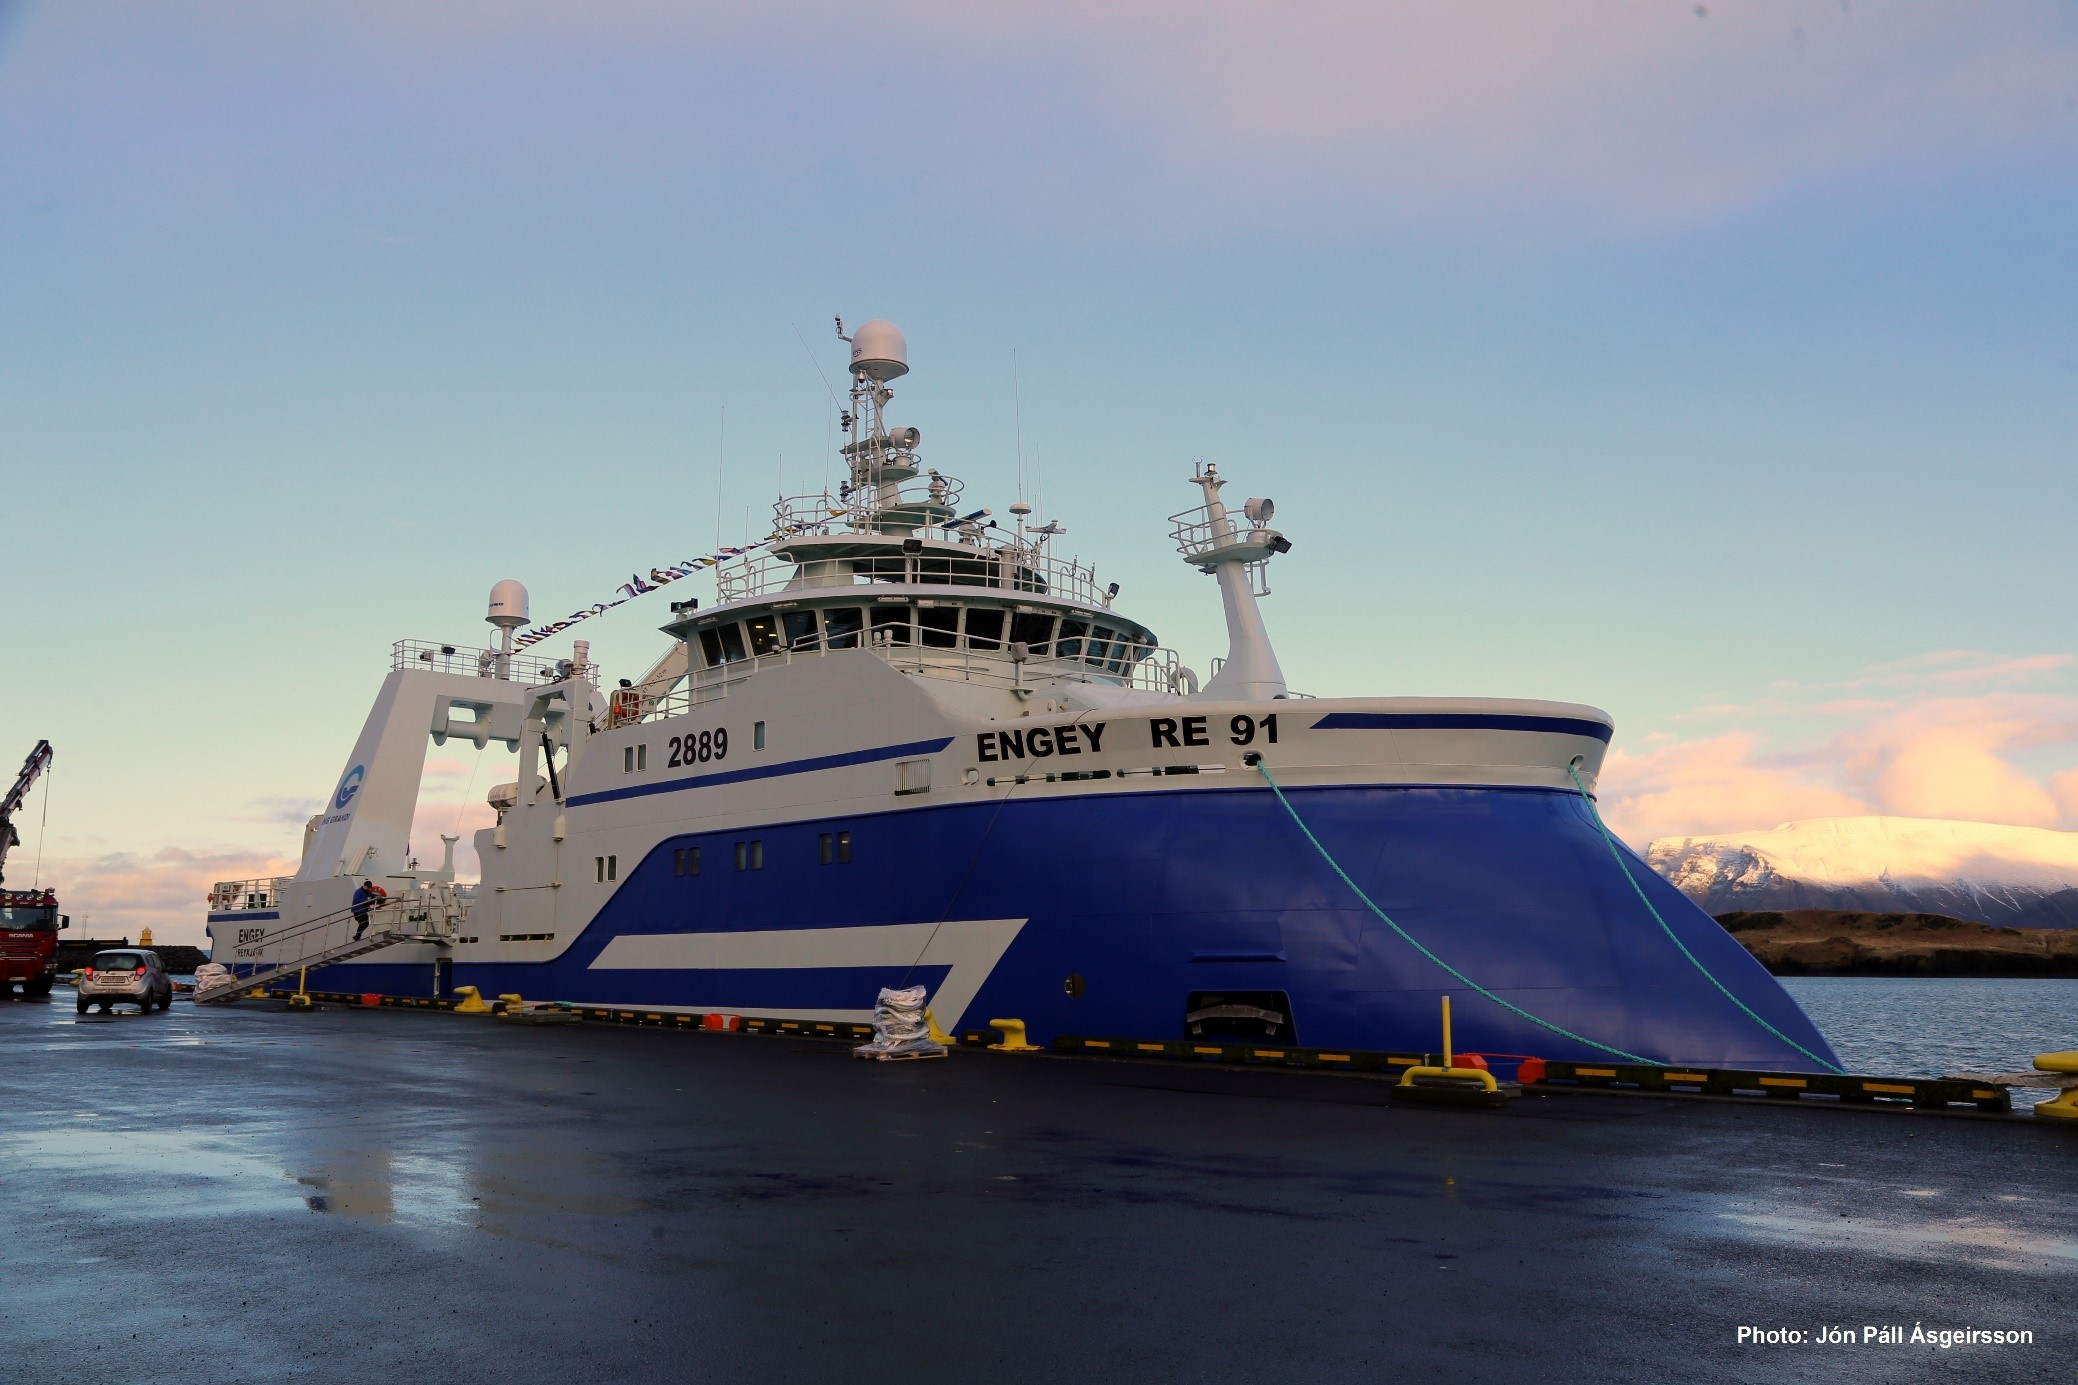 HB Grandi's fresh fish trawler Engey RE 91 will carry all of the latest technology to ensure the best possible fresh fish with un paralleled automation.